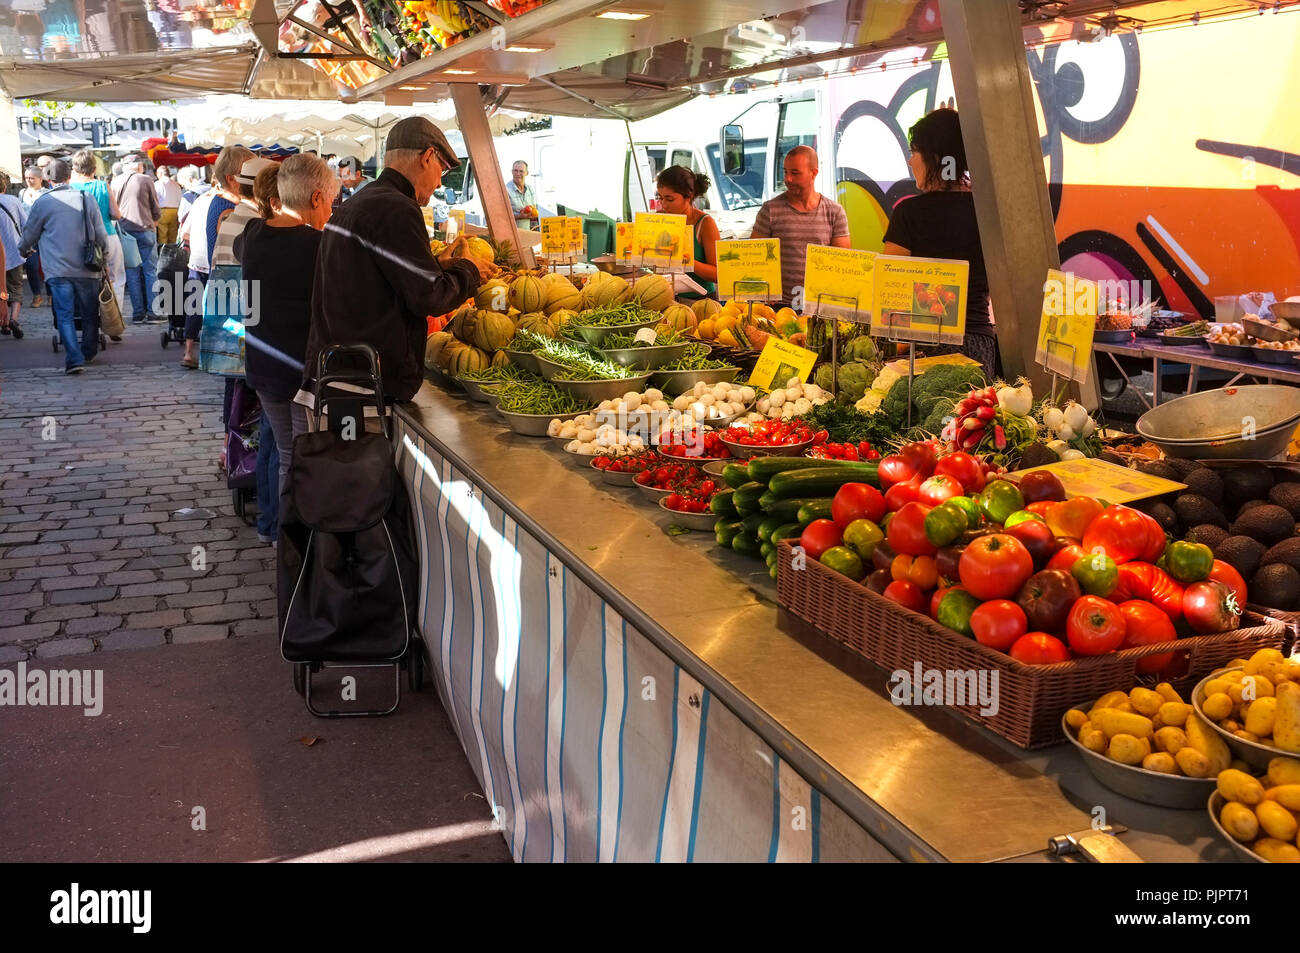 outdoor-food-market-on-the-place-ambroise-courtois-in-lyon-france-PJPT71.jpg